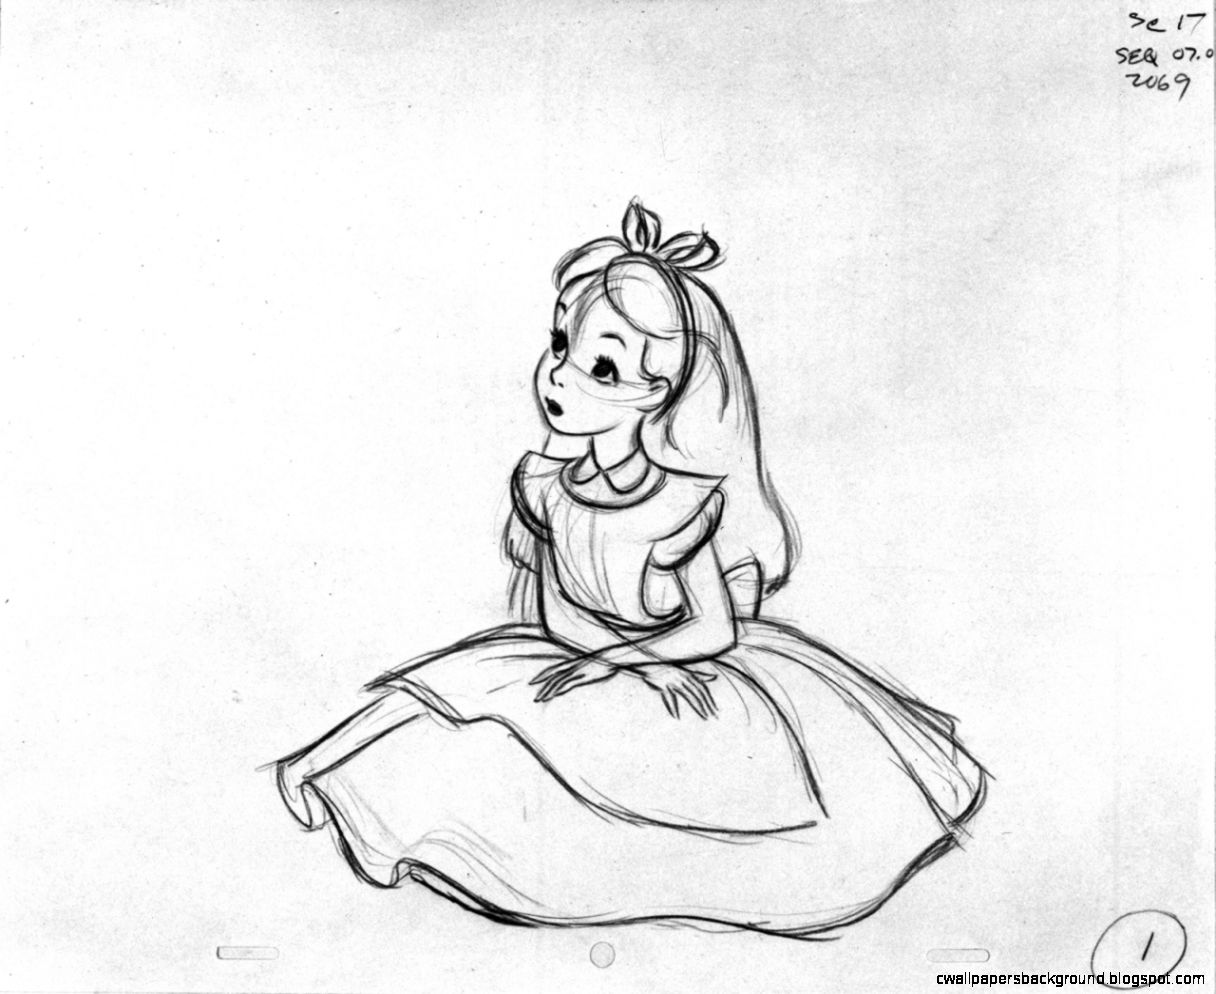 1216x994 Alice In Wonderland Drawings Tumblr Wallpapers Background